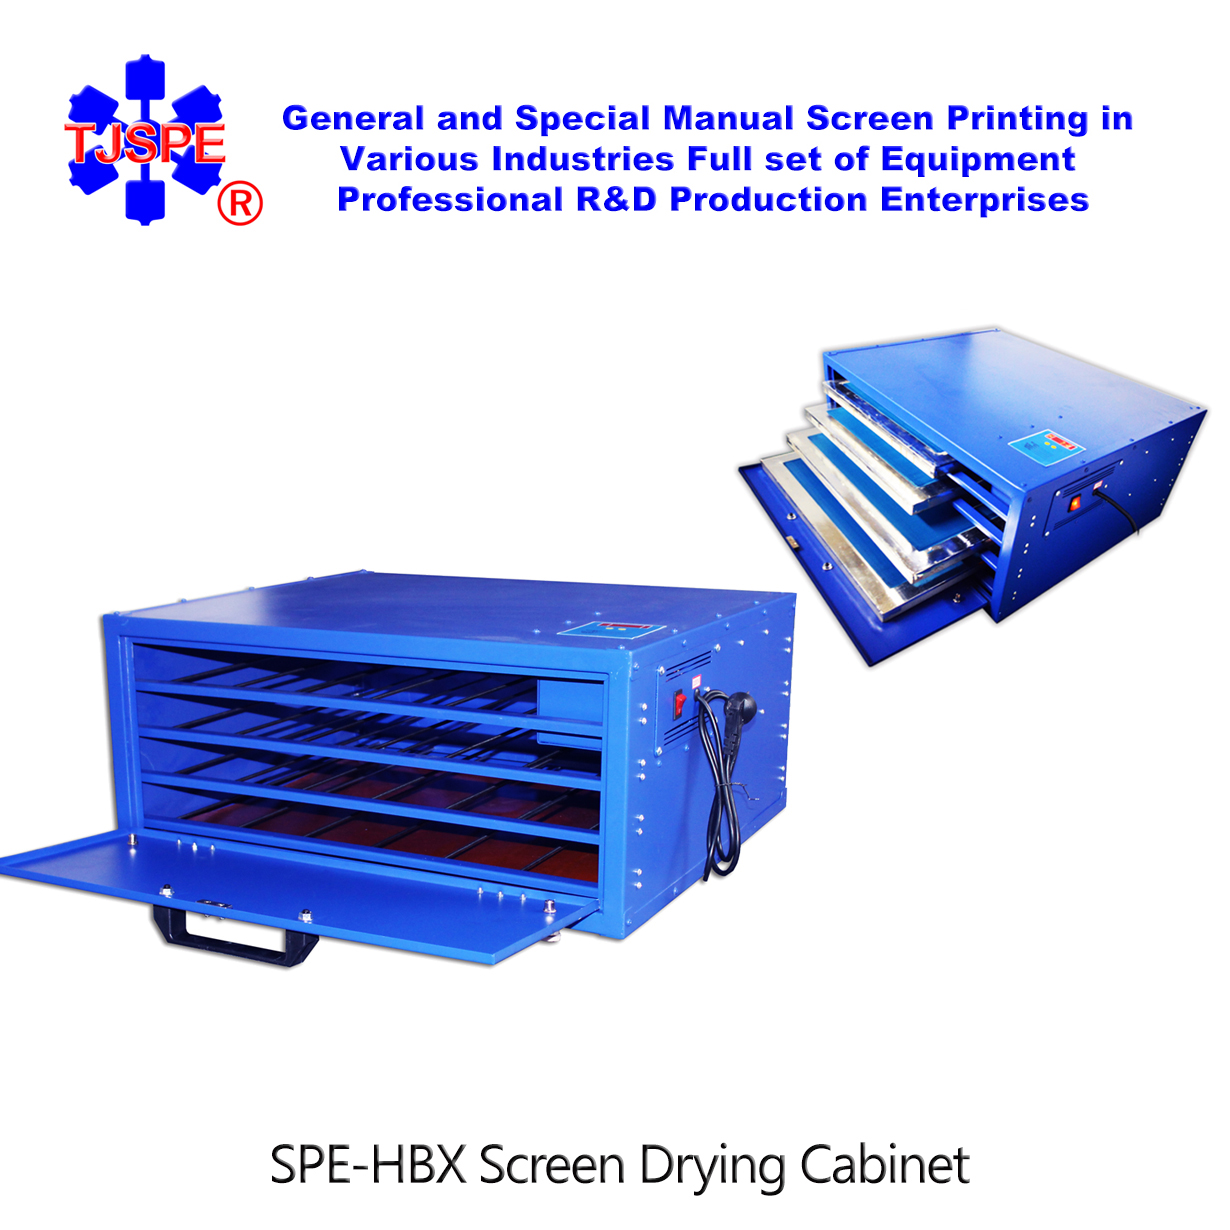 006831:SPE HBX Screen Drying Cabinet